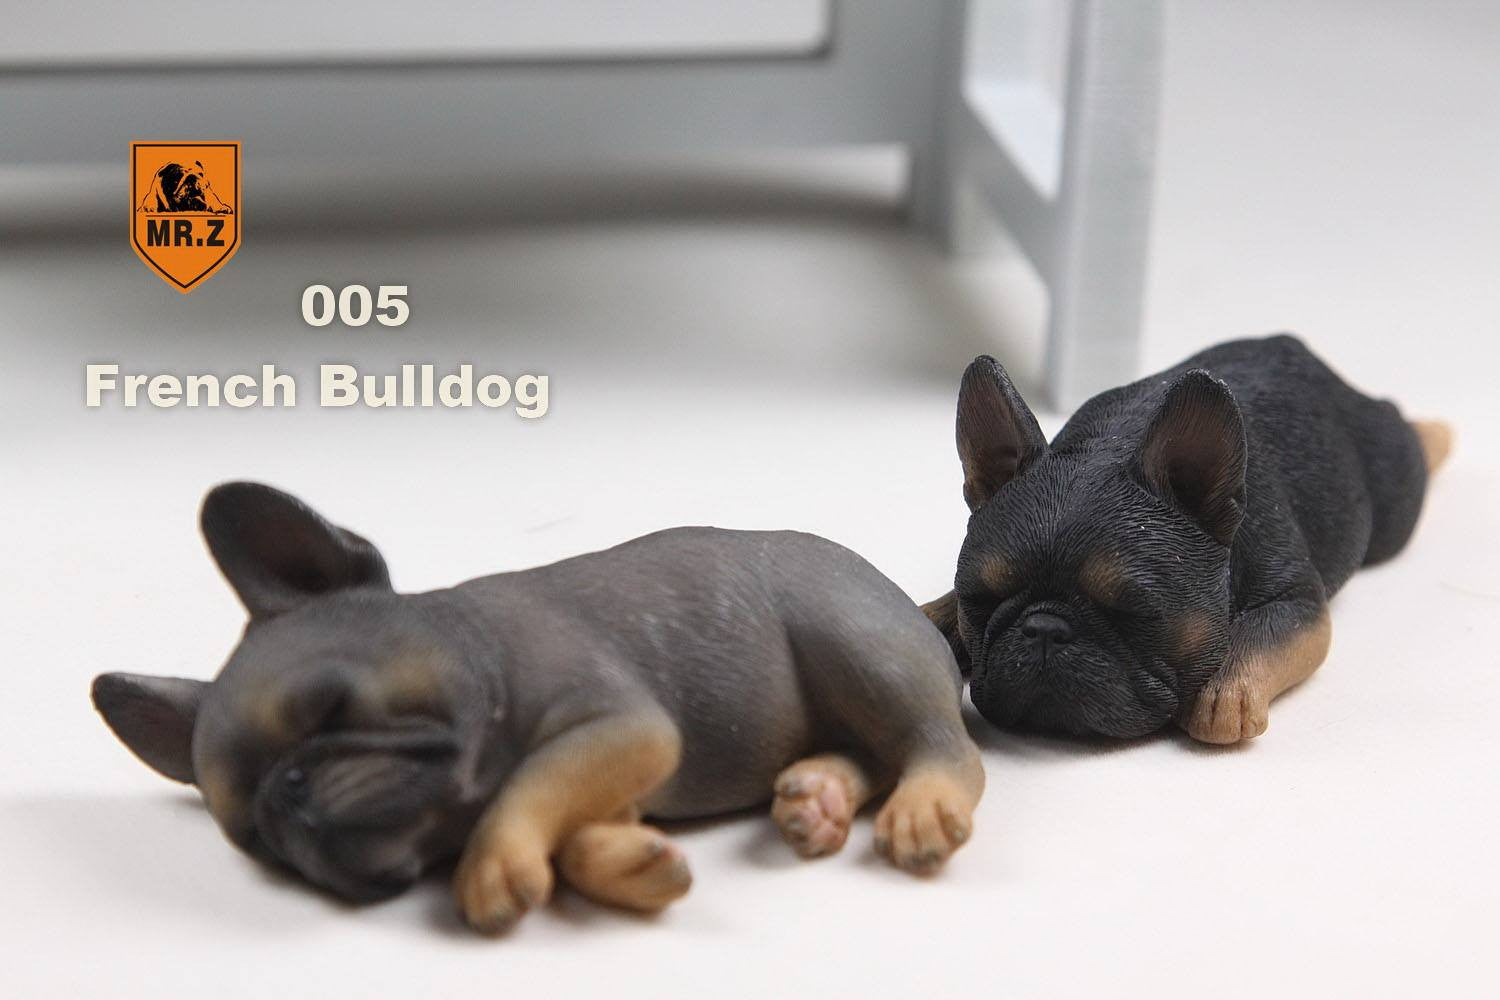 MR.Z - Real Animal Series No.9 - 1/6th Scale French Bulldog (Sleep Mode) 001-005